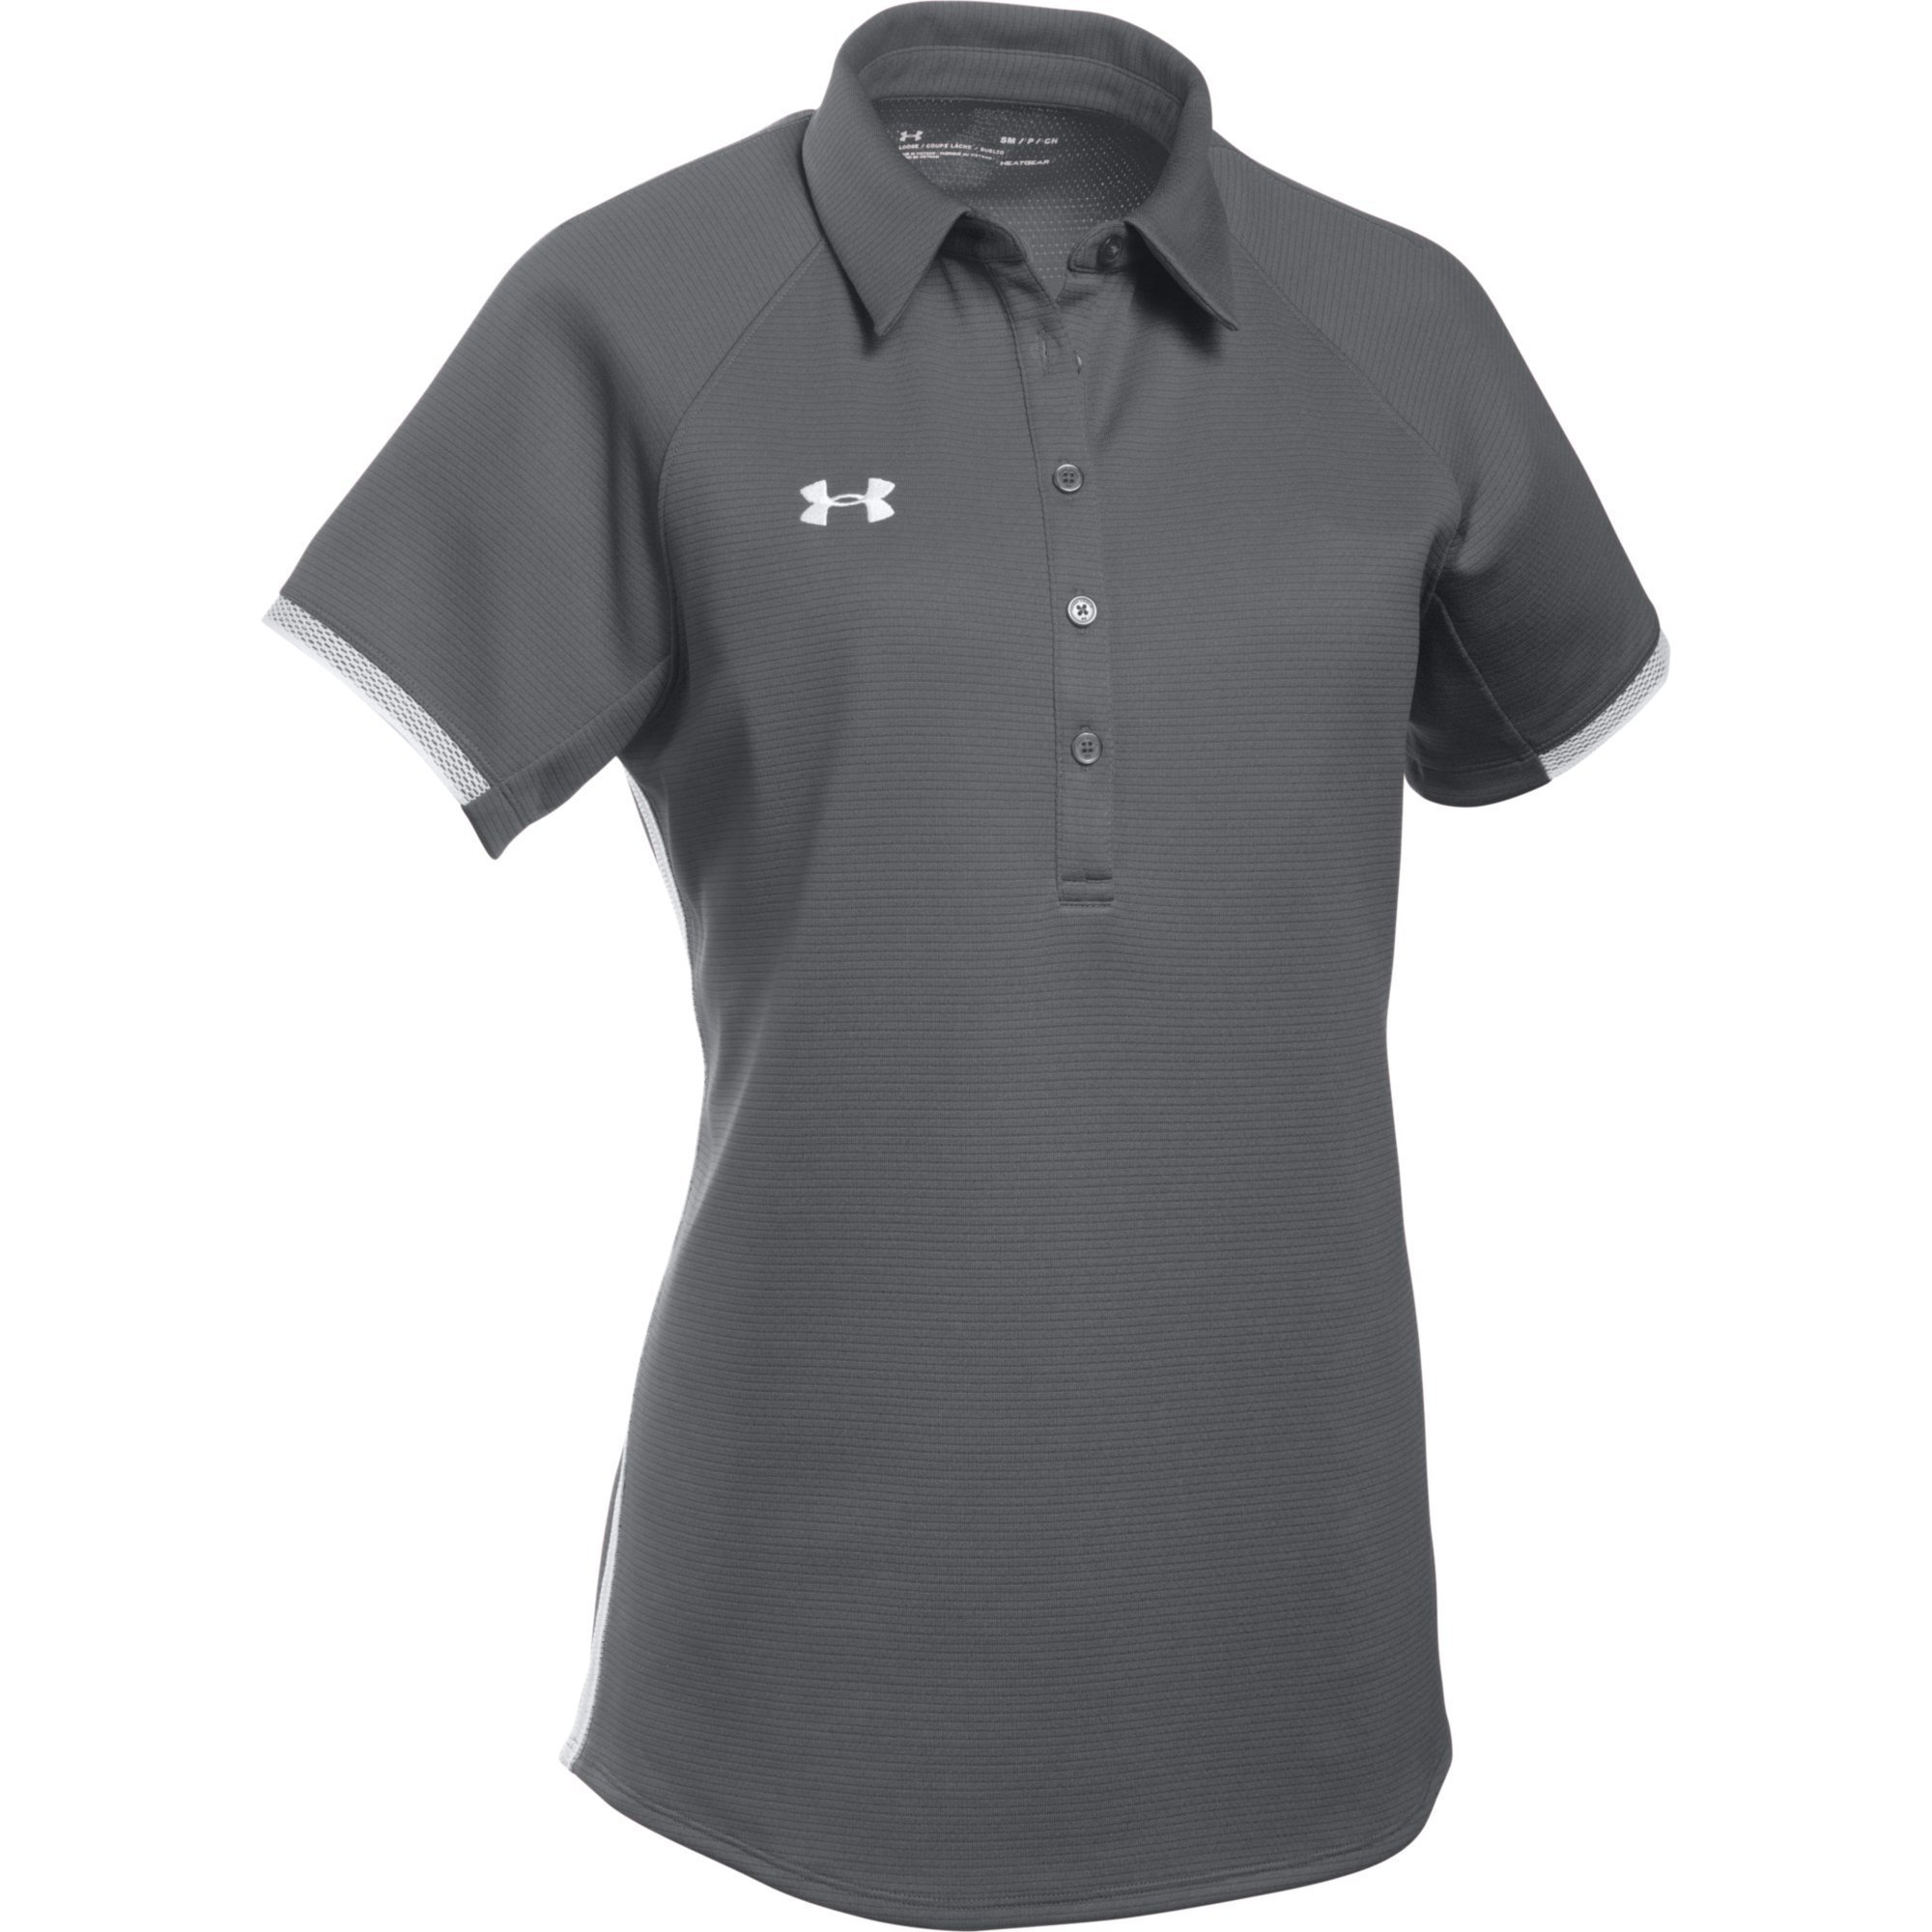 Under Armour Women's UA Rival Polo (Large, Graphite-White) by Under Armour